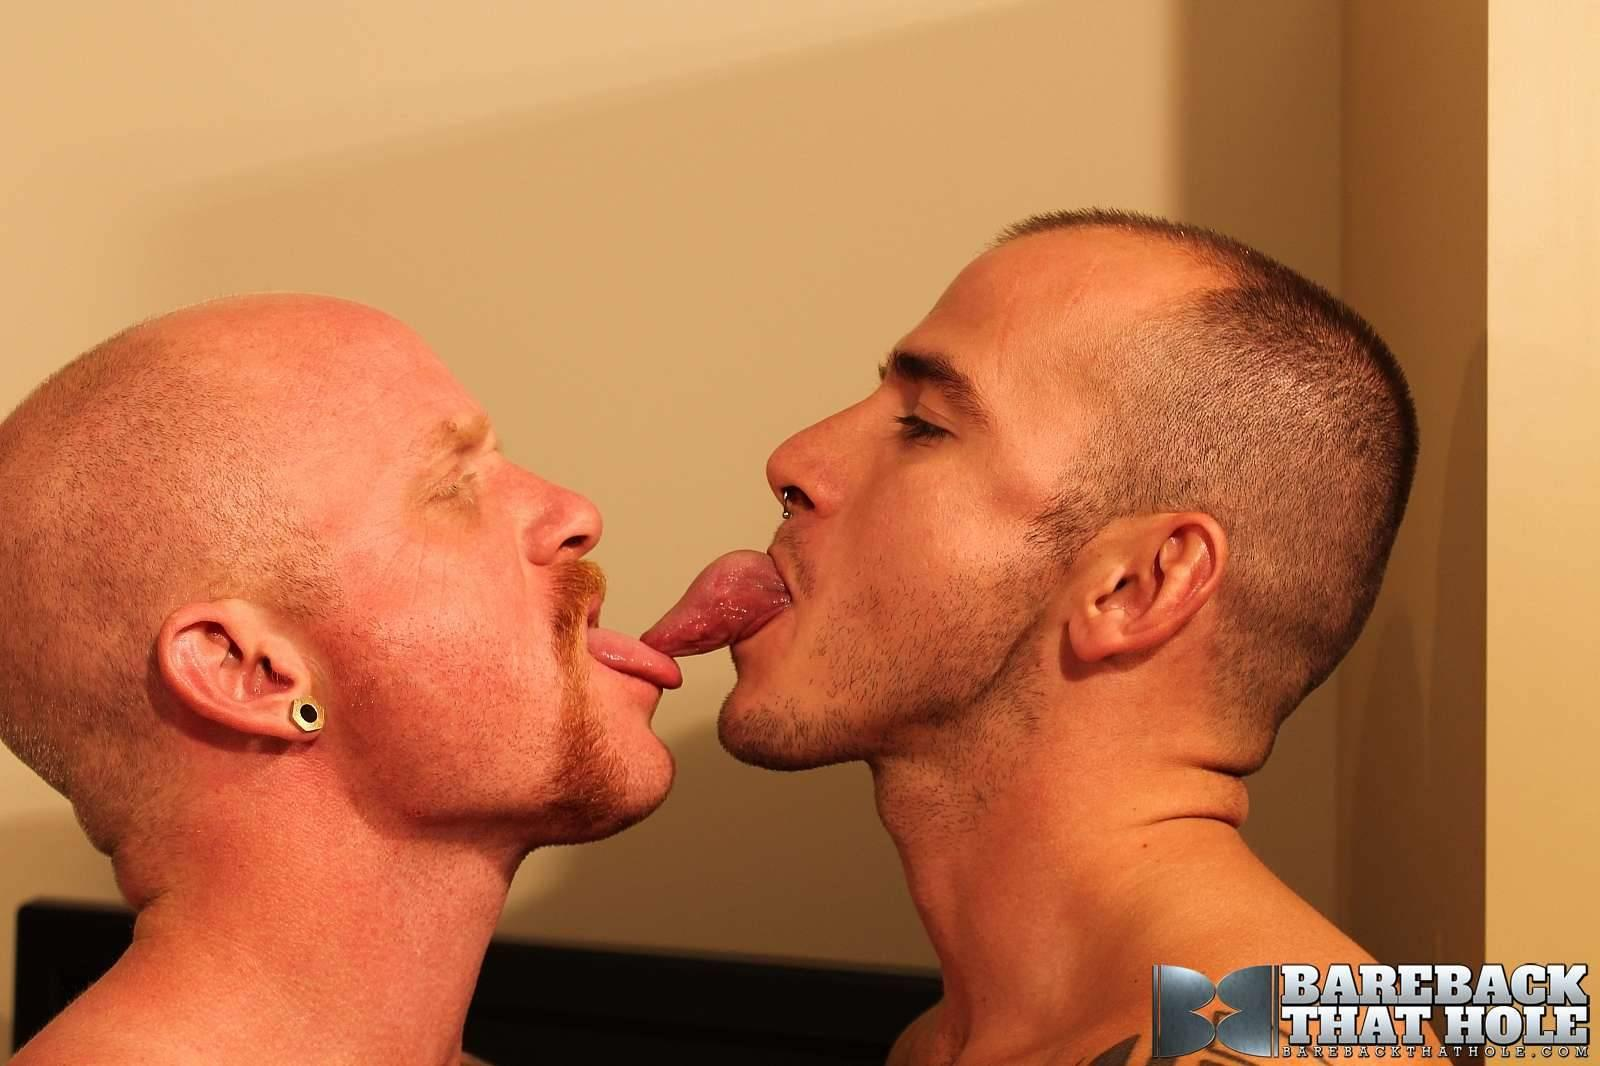 Bareback That Hole Cam Christou and Brock Rustin Redhead Ginger Gets Barebacked By A Big Cock Amateur Gay Porn 23 Redhead Ginger Brock Rustin Taking A Huge Bareback Load